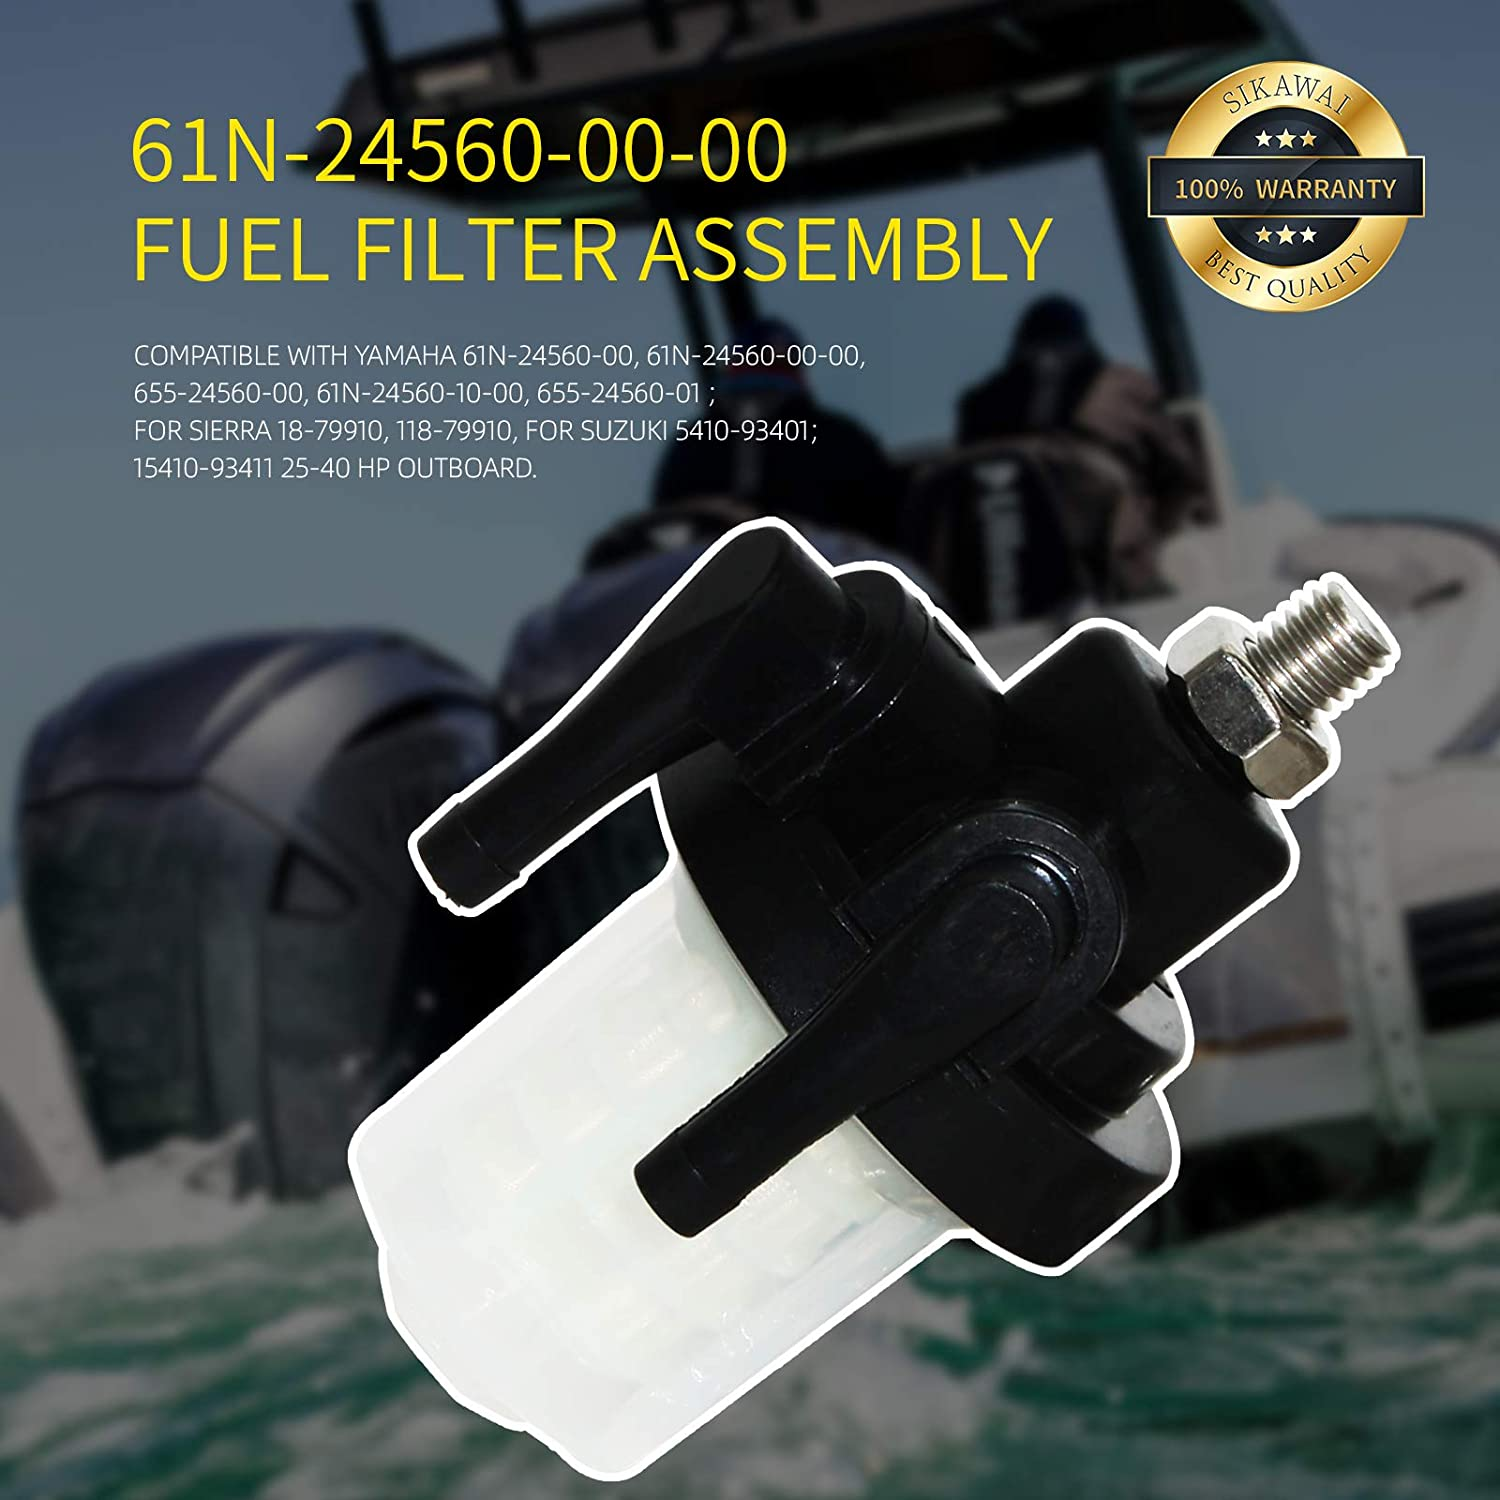 Outboard engine 61N-24560-00-00 Fuel Filter Assembly by Sikawai Compatible with Yamaha 9.9HP 15HP 20HP 25HP 30HP 40HP 48HP 50HP 2//4 Strokes Engine Marine Boat Replaces Sierra 18-79910,61N245601000